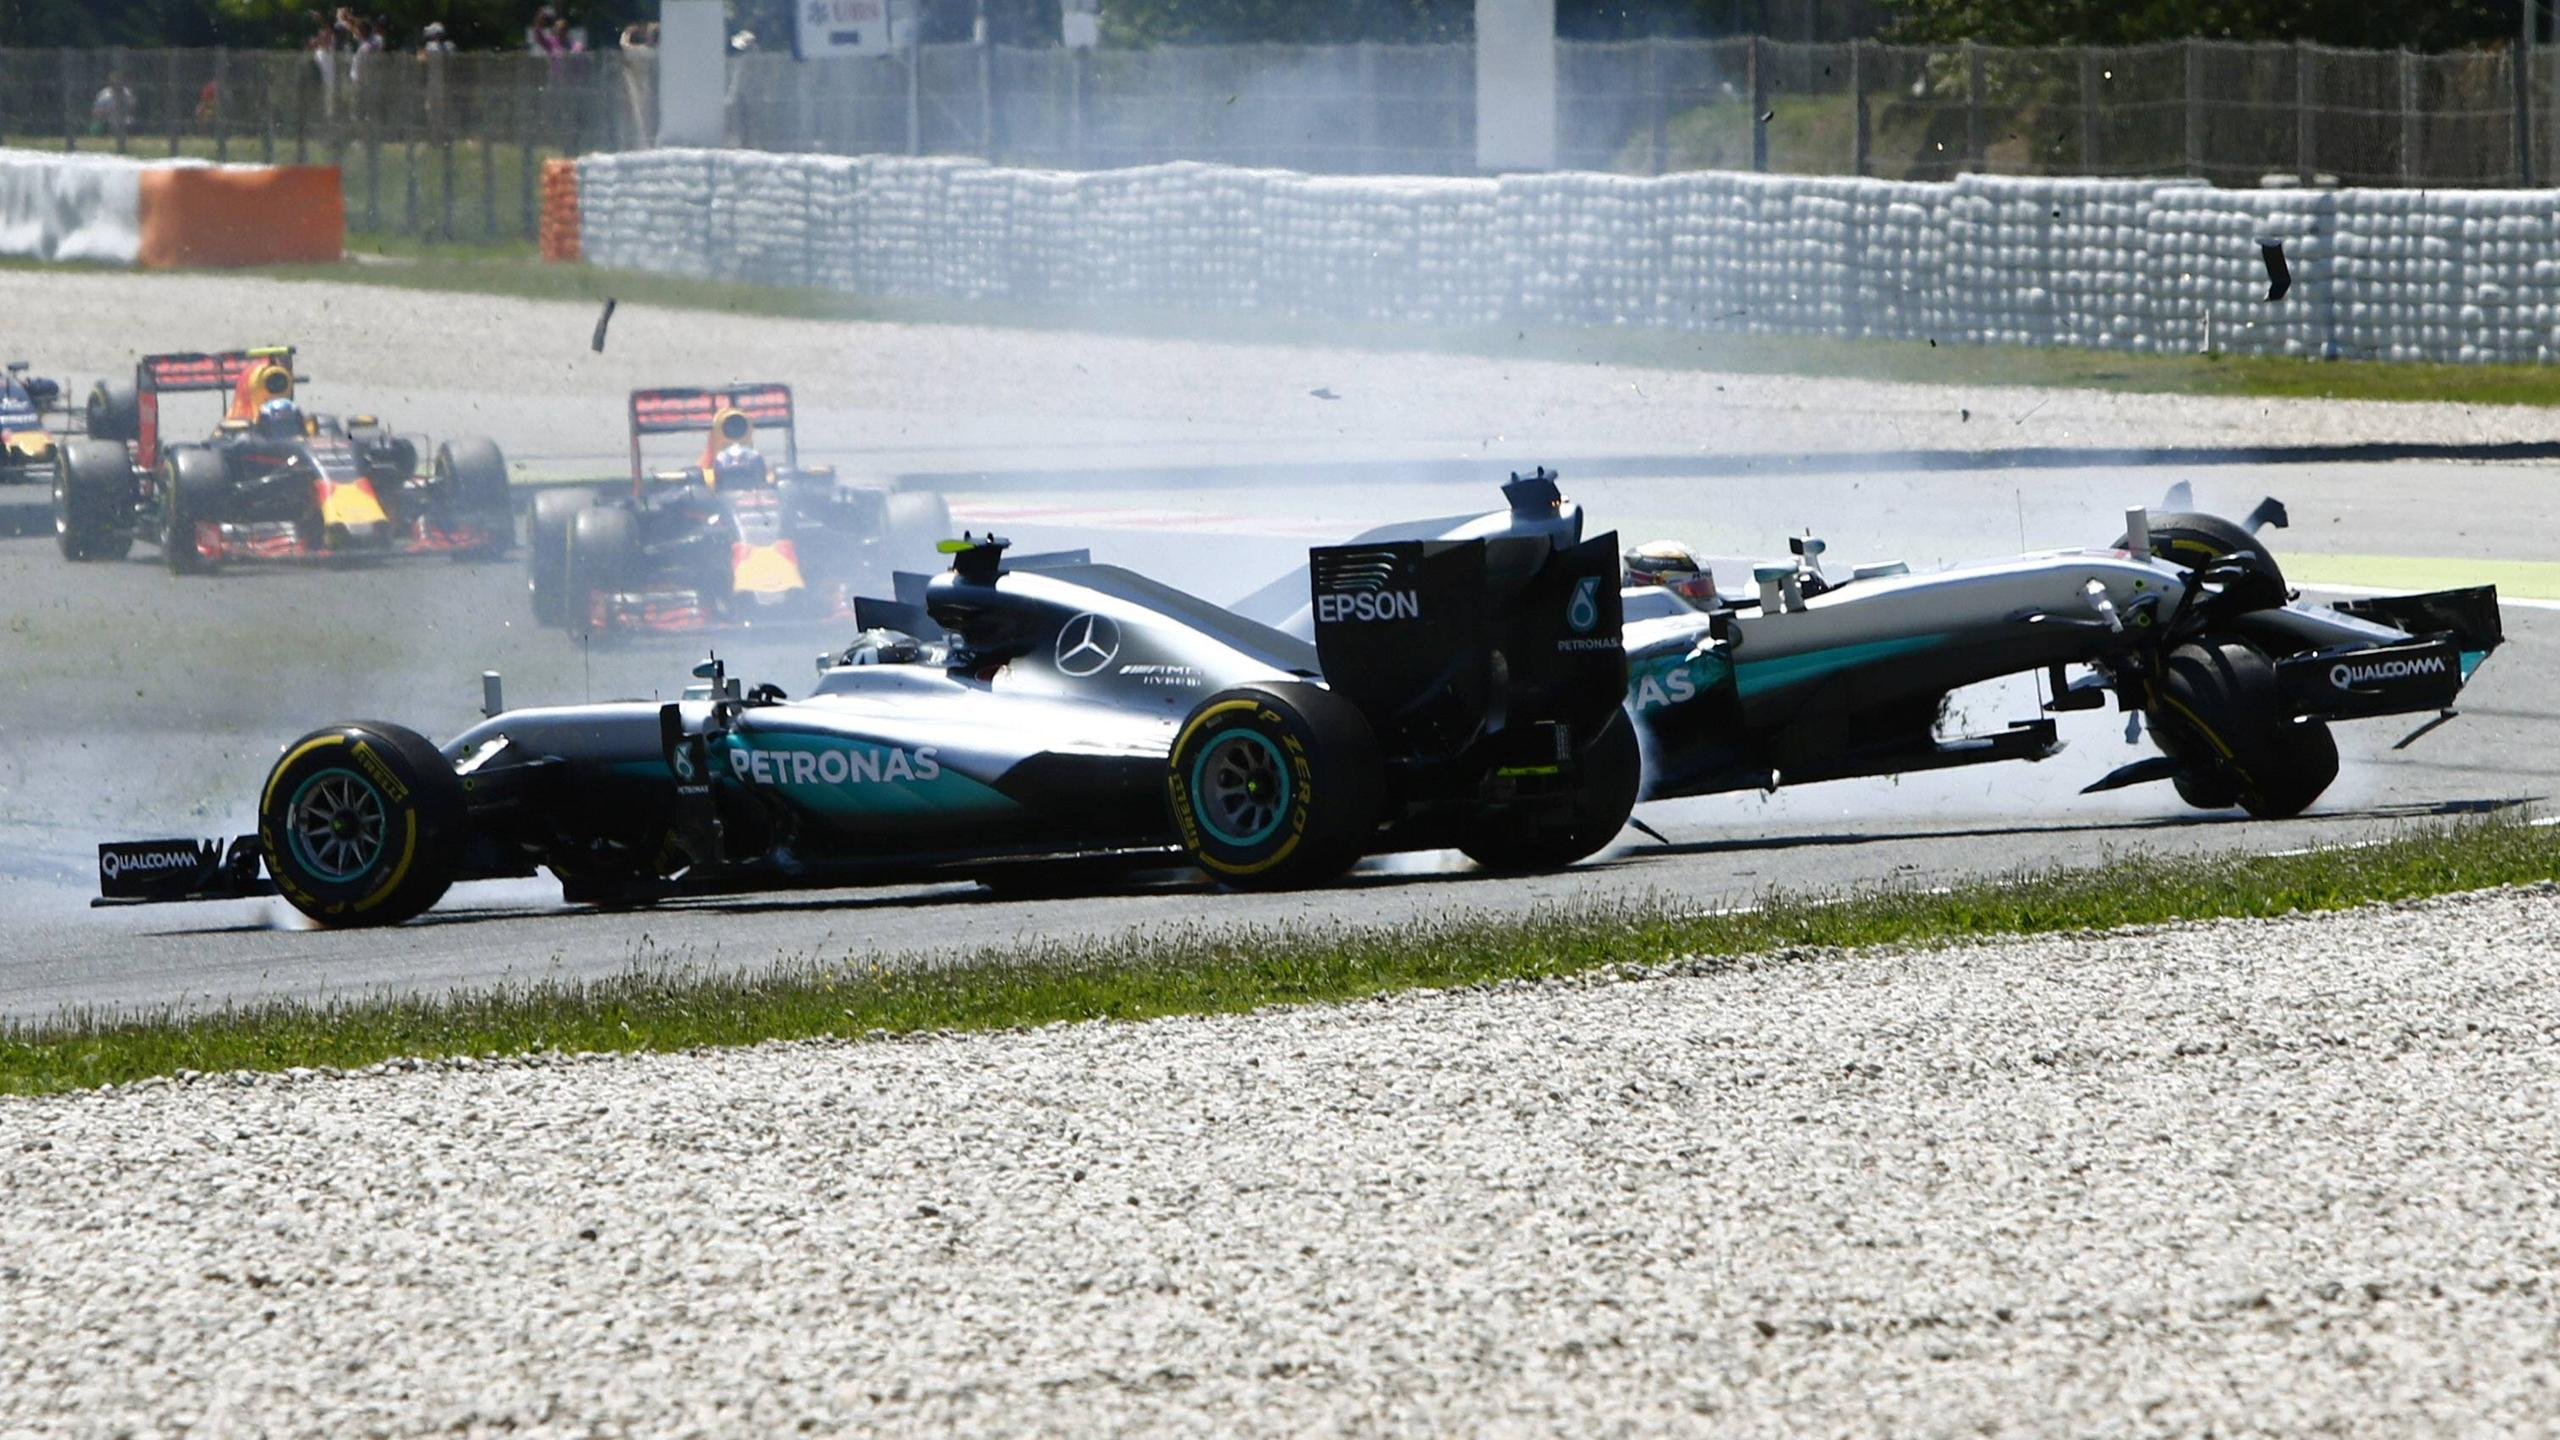 Mercedes: Nico Rosberg, Lewis Hamilton - Crash GP Spain 2016